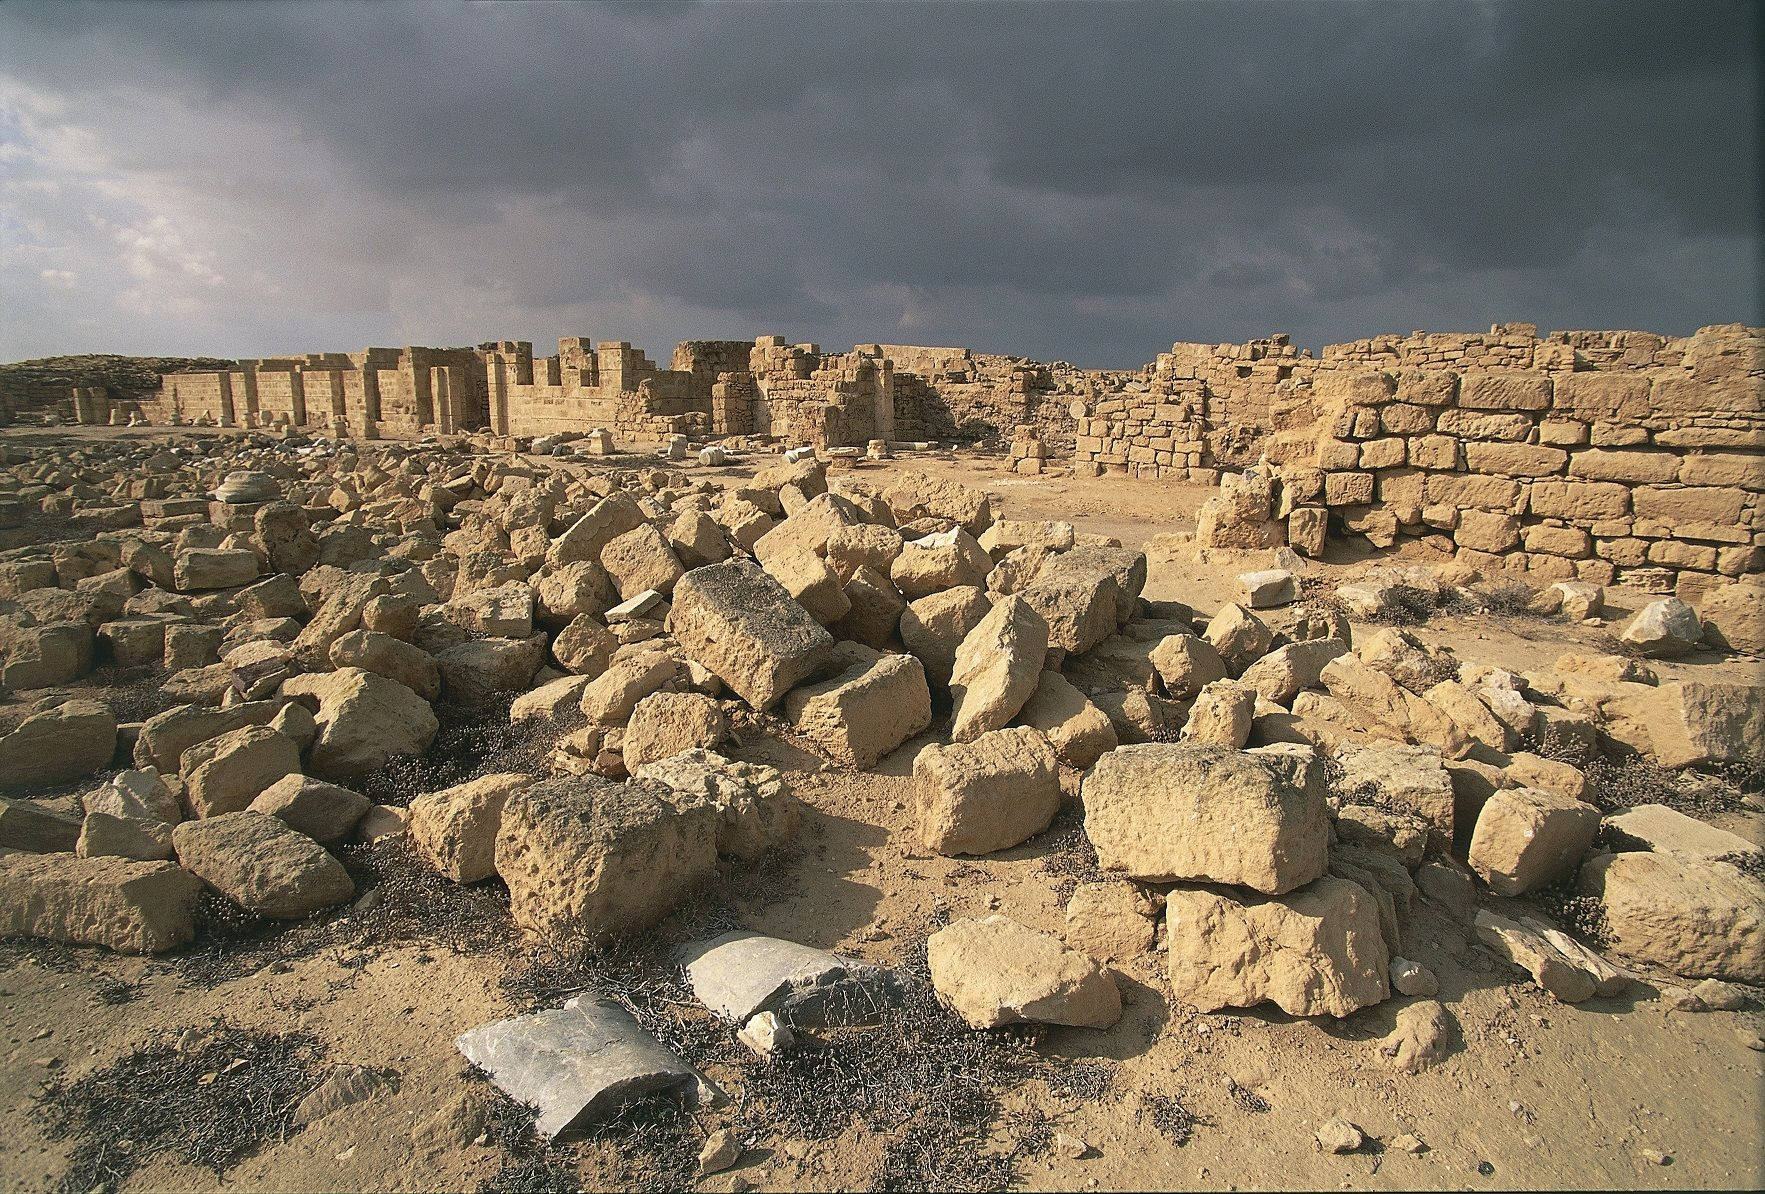 Christian ruins of abu mena egypt another world heritage site e68645f51483a11dfaf518a1655dd274g gumiabroncs Gallery